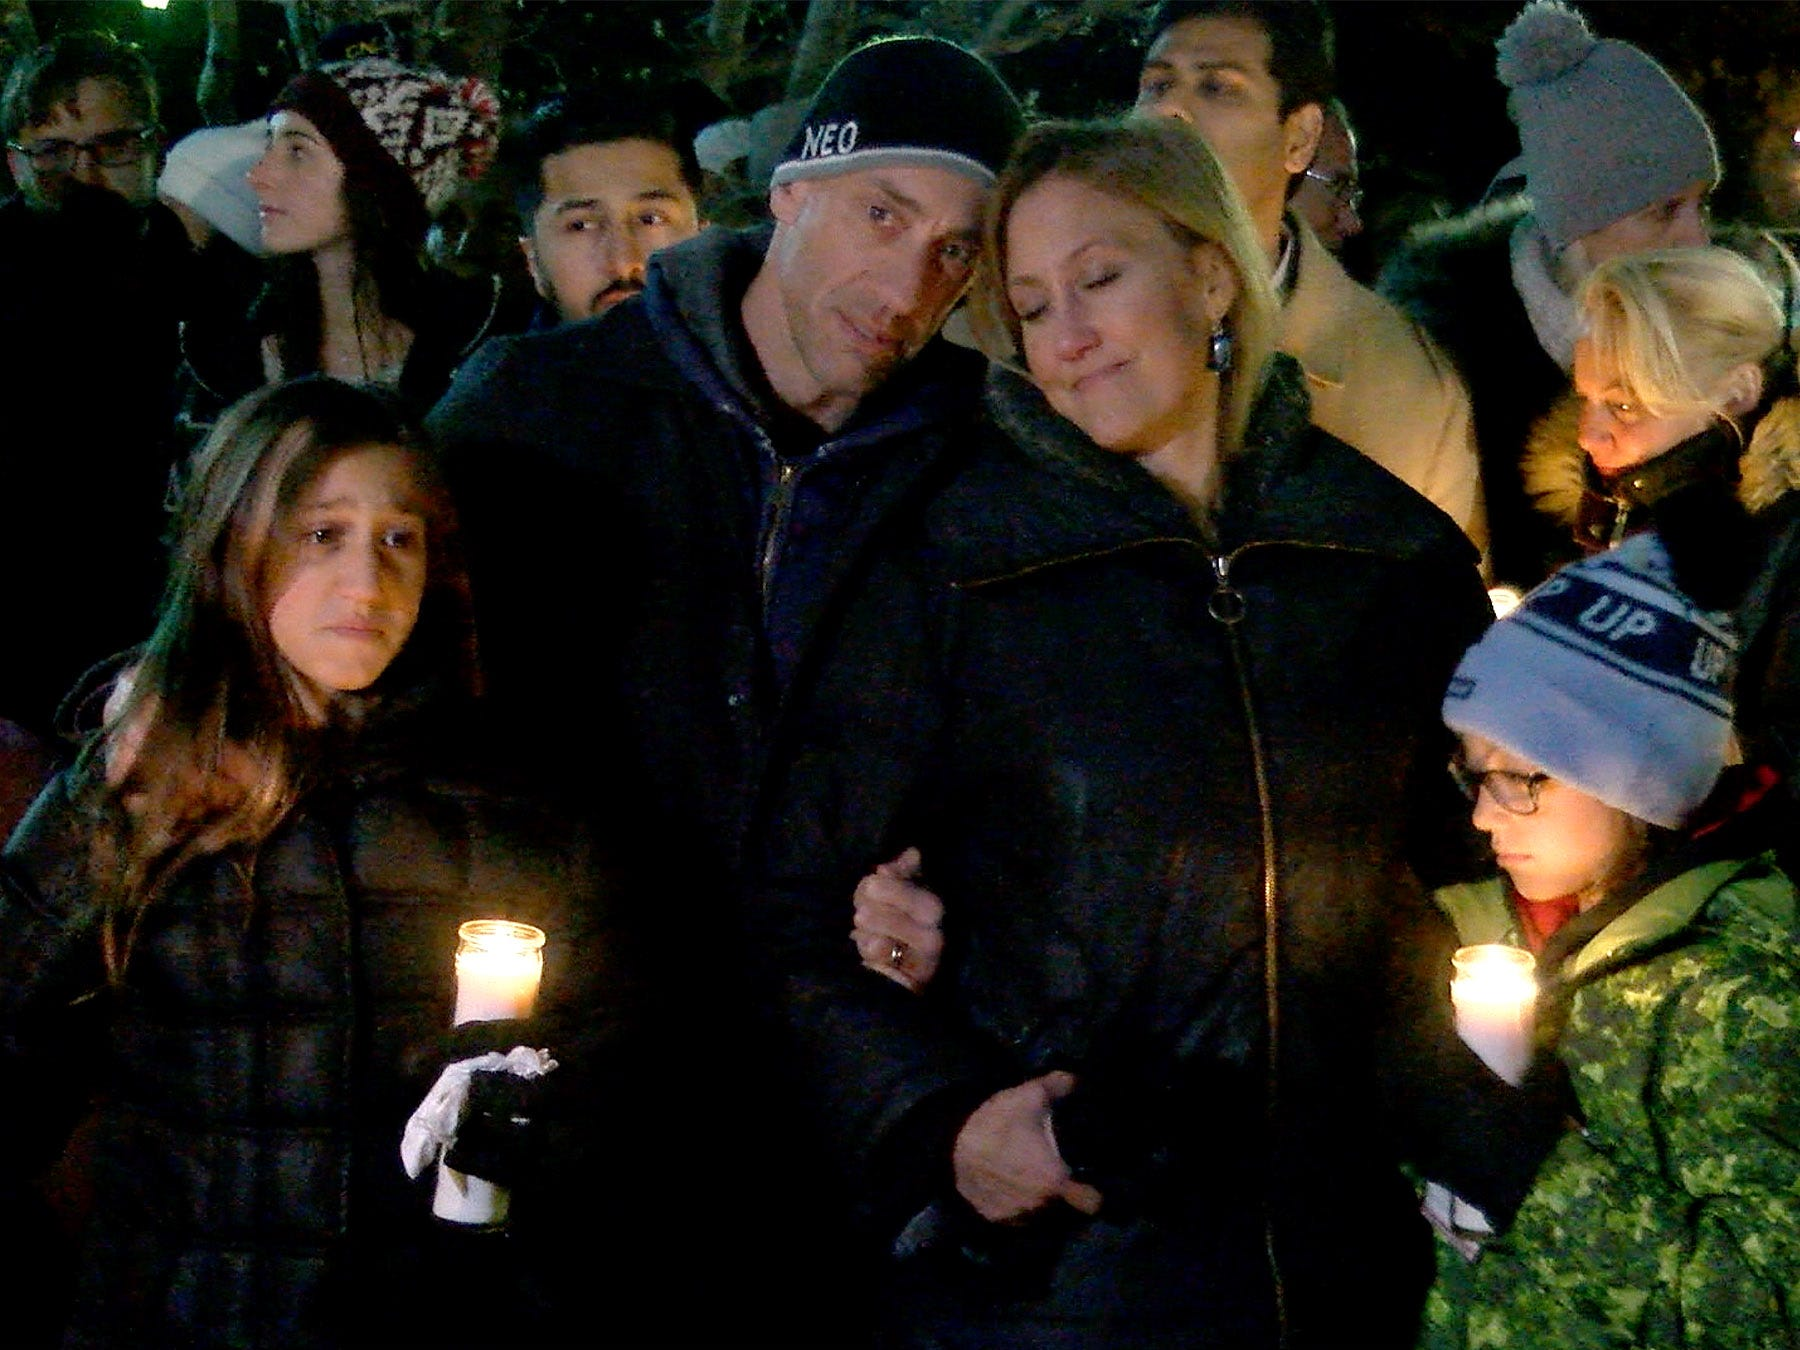 People gather outside the Colts Neck Town Hall Wednesday night, November 21, 2018, for a vigil to remember the Caneiro family killed in a house fire the previous day.